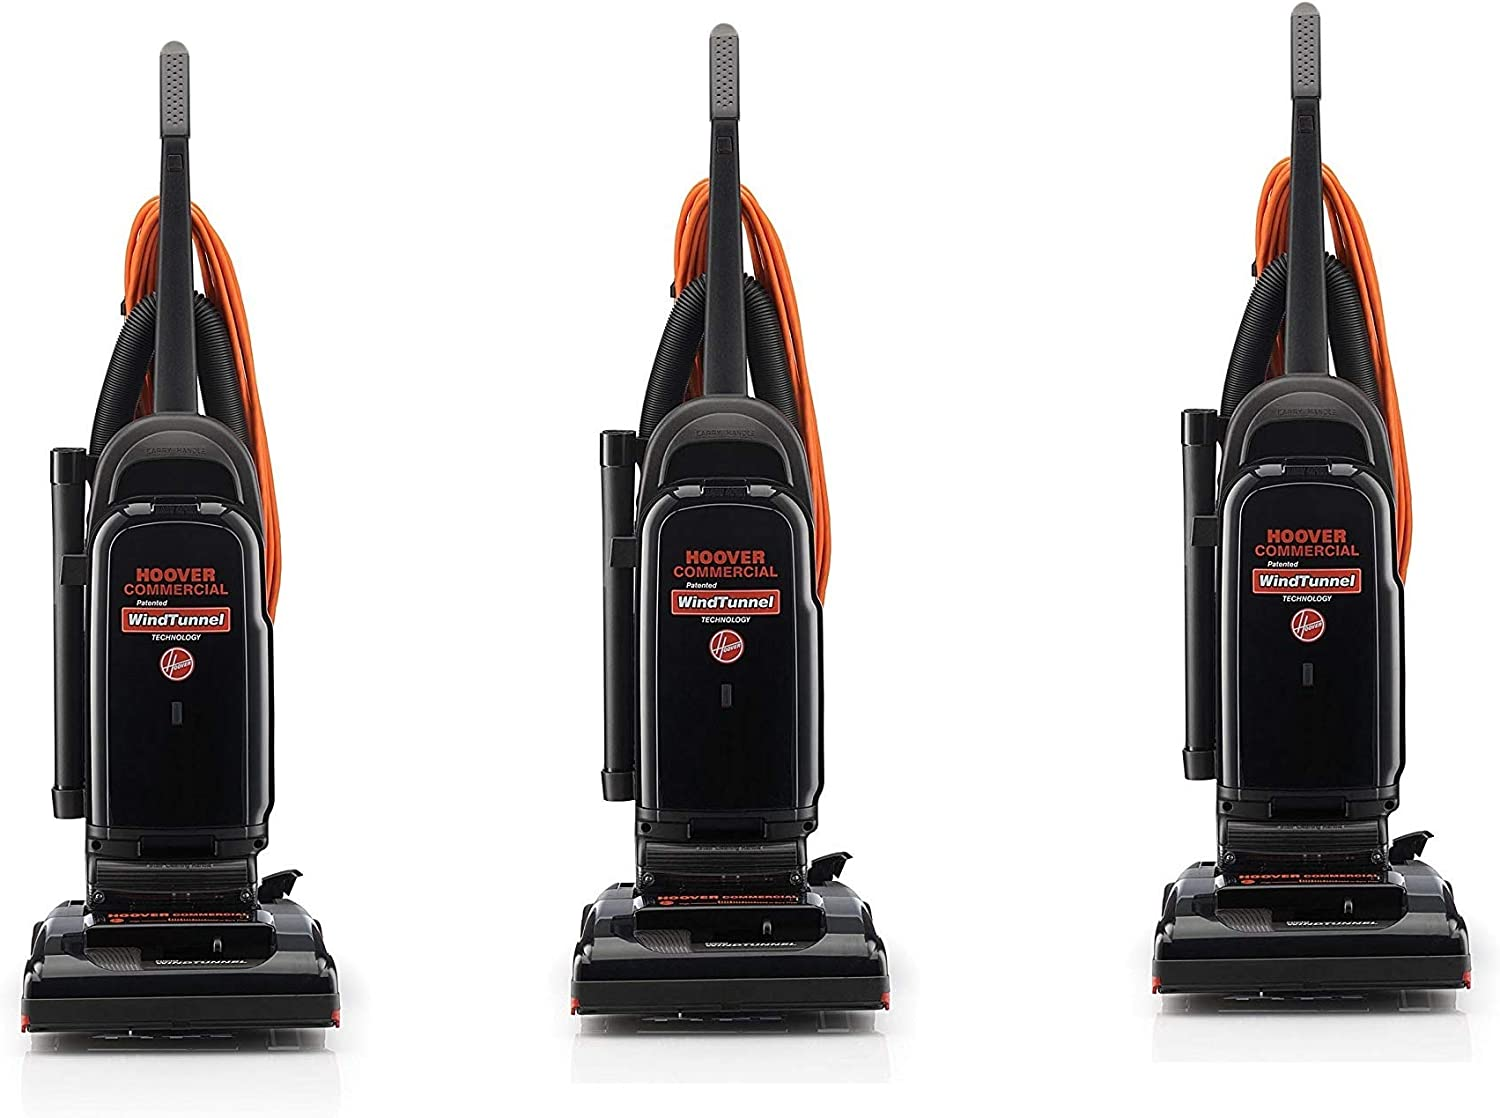 Pack of 3 Hoover Commercial WindTunnel 13 Bagged Upright Vacuum C1703900